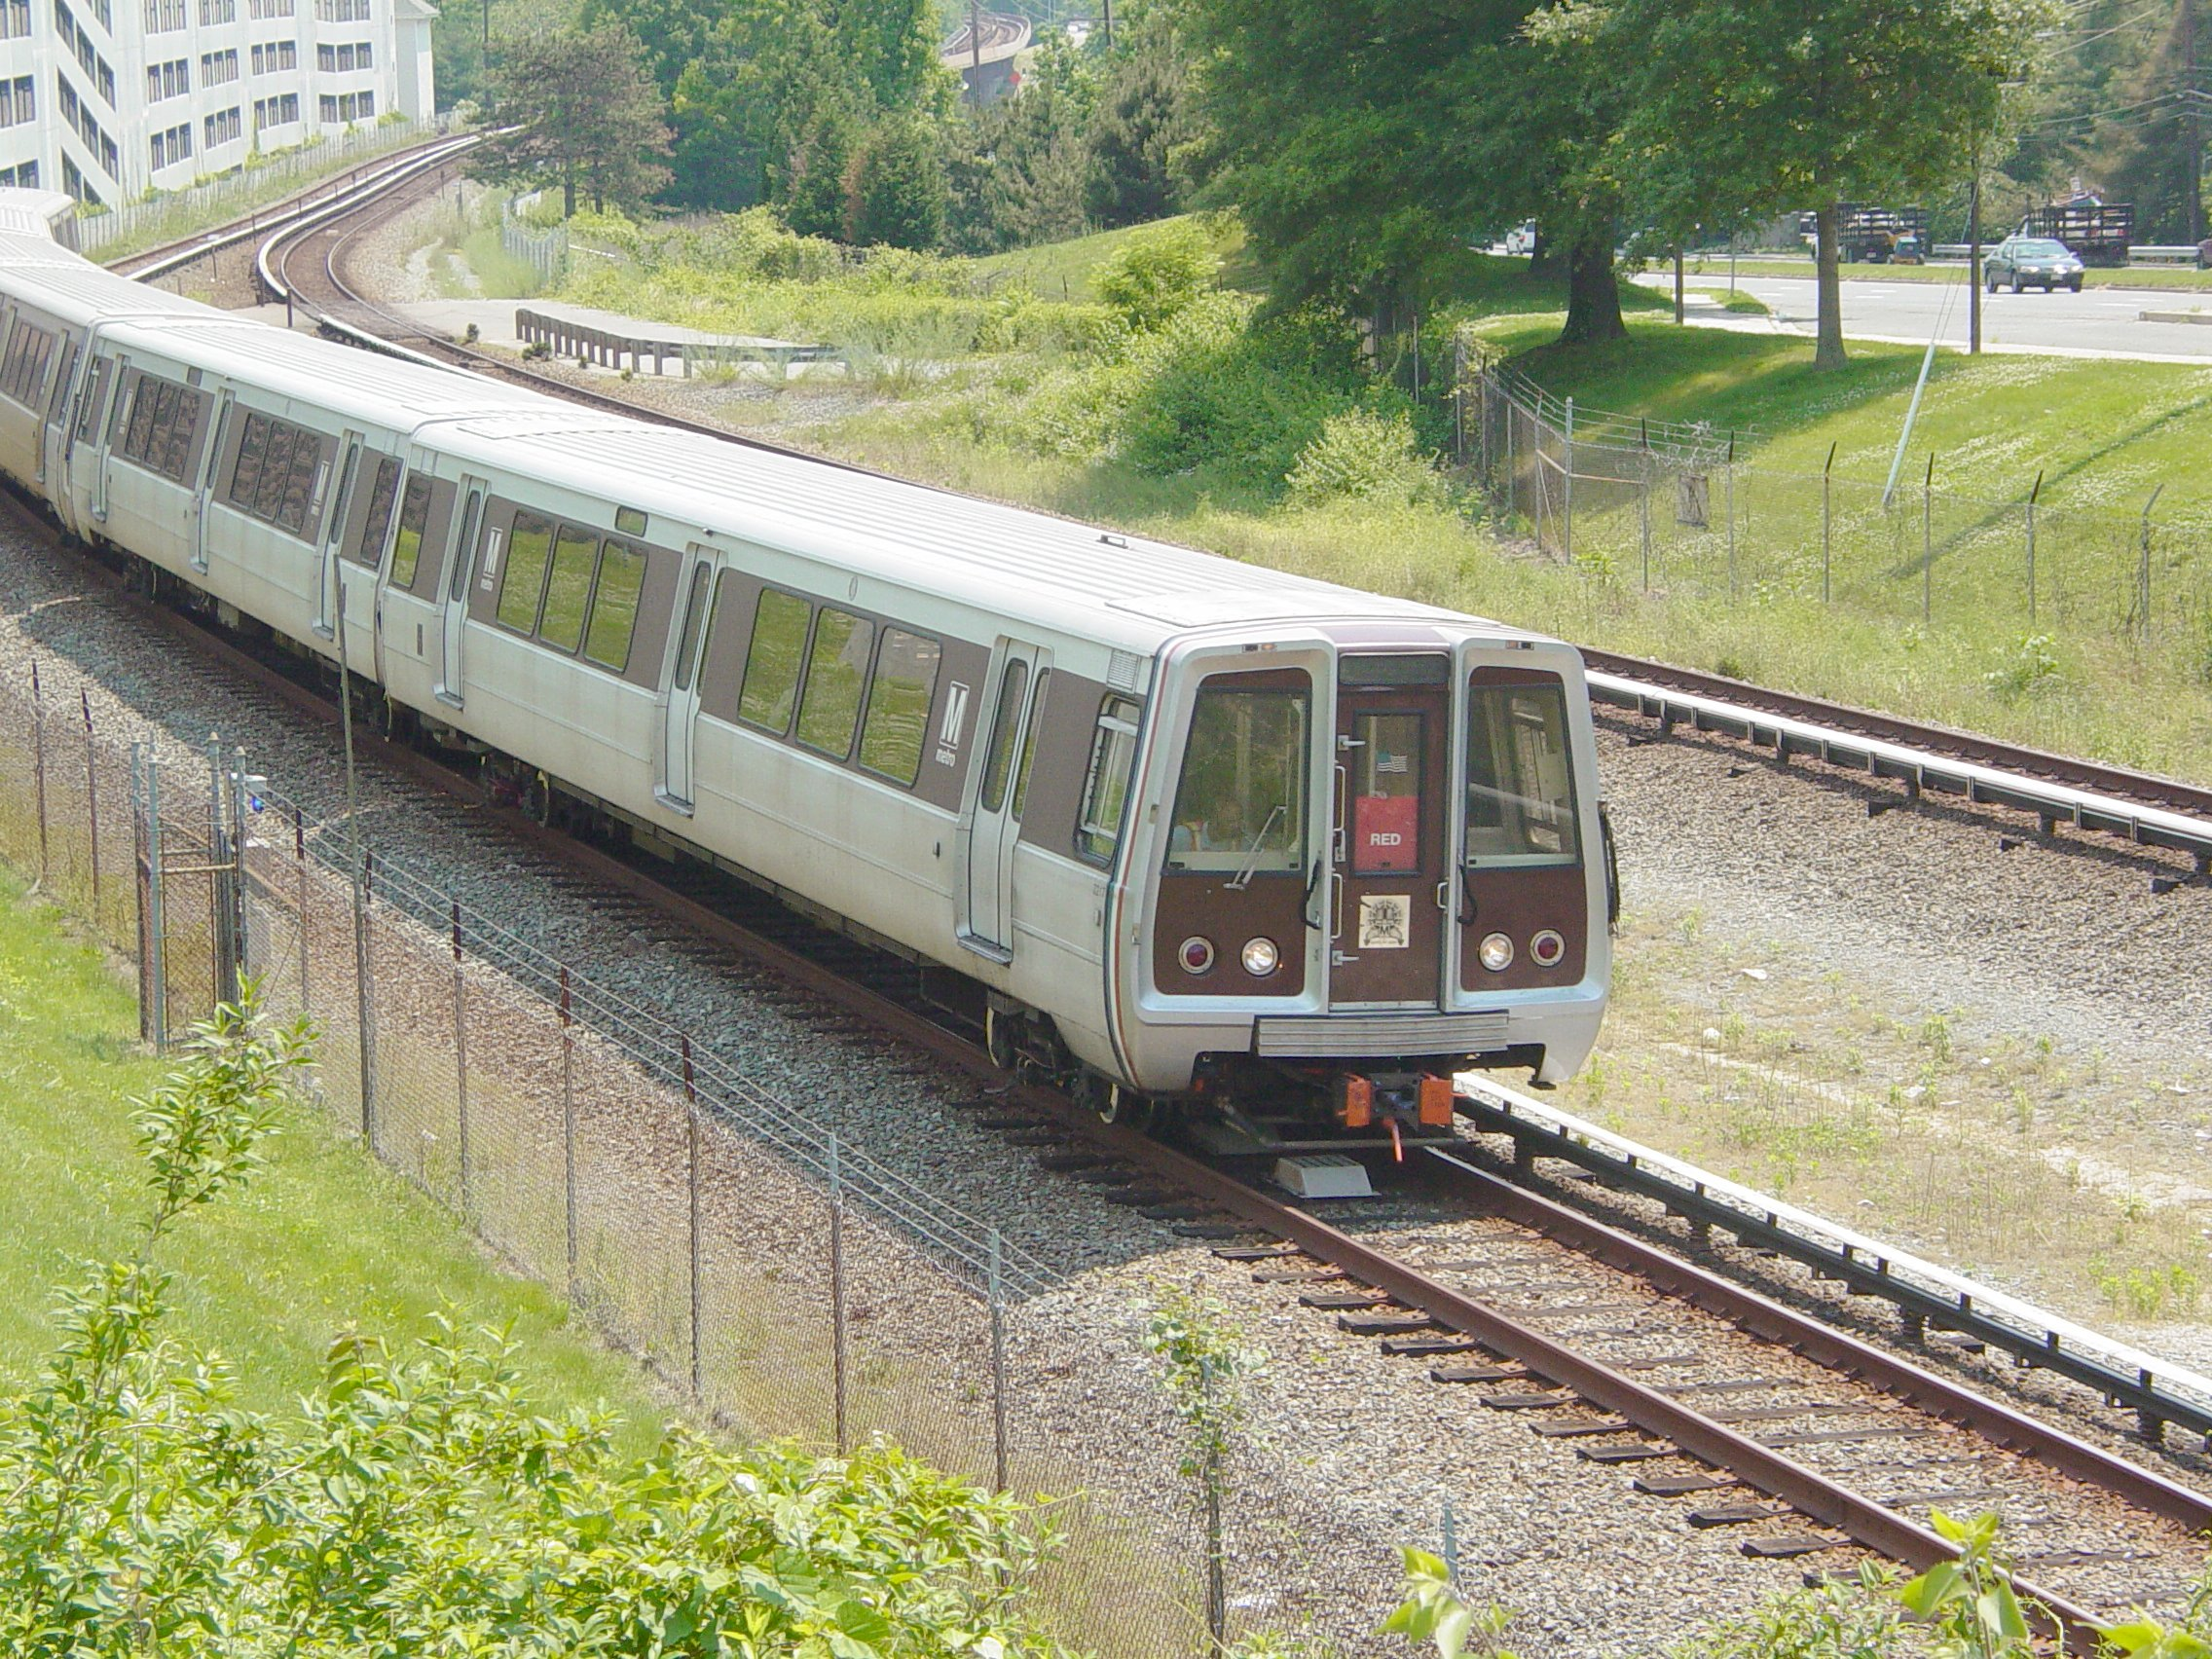 Breda_3217_(Washington_Metro).jpg